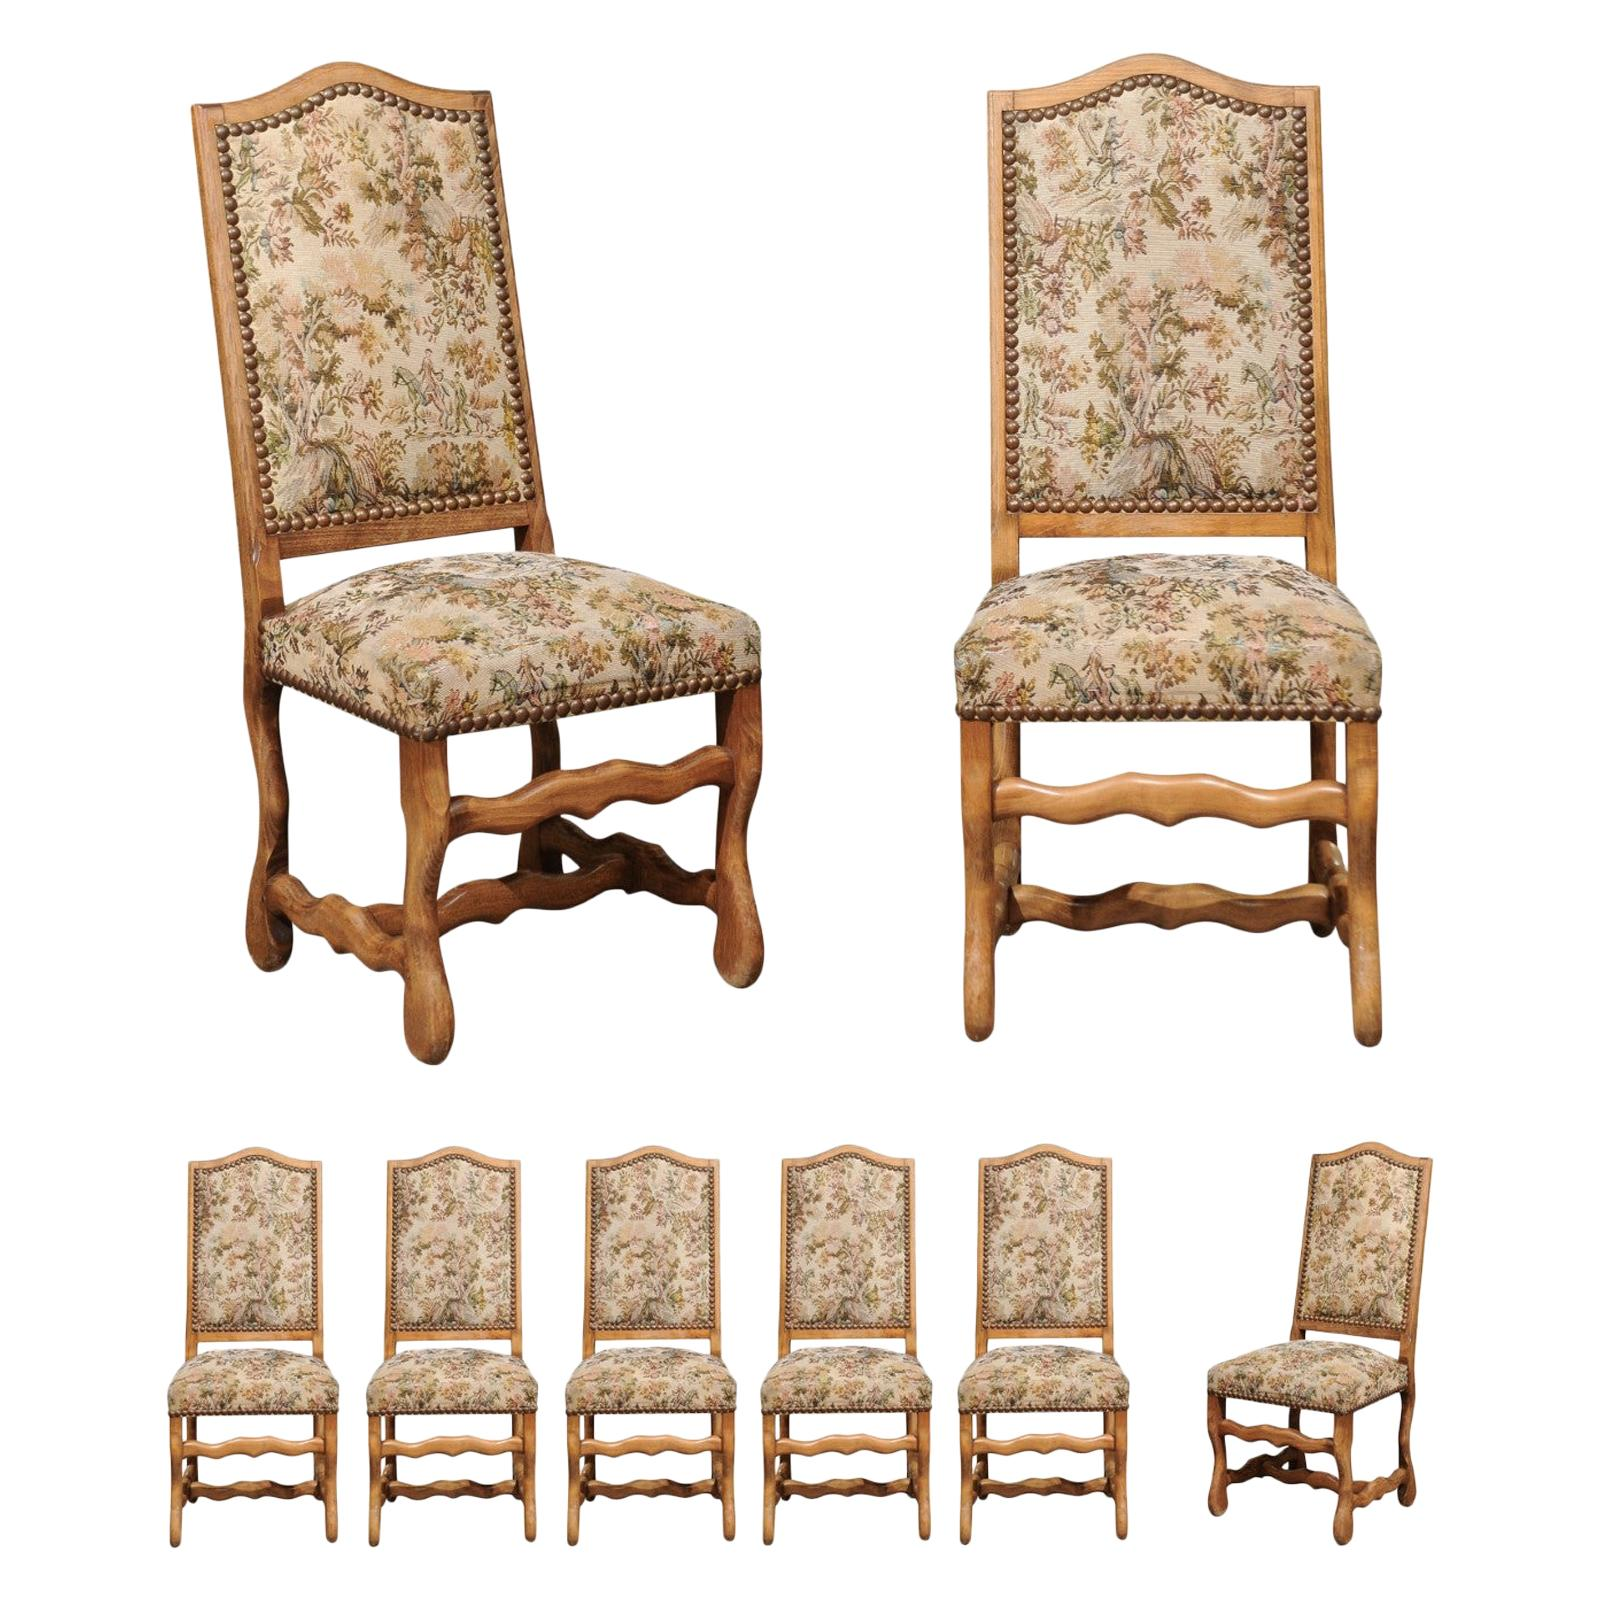 Admirable Louis Xiii Dining Room Chairs 34 For Sale At 1Stdibs Ibusinesslaw Wood Chair Design Ideas Ibusinesslaworg